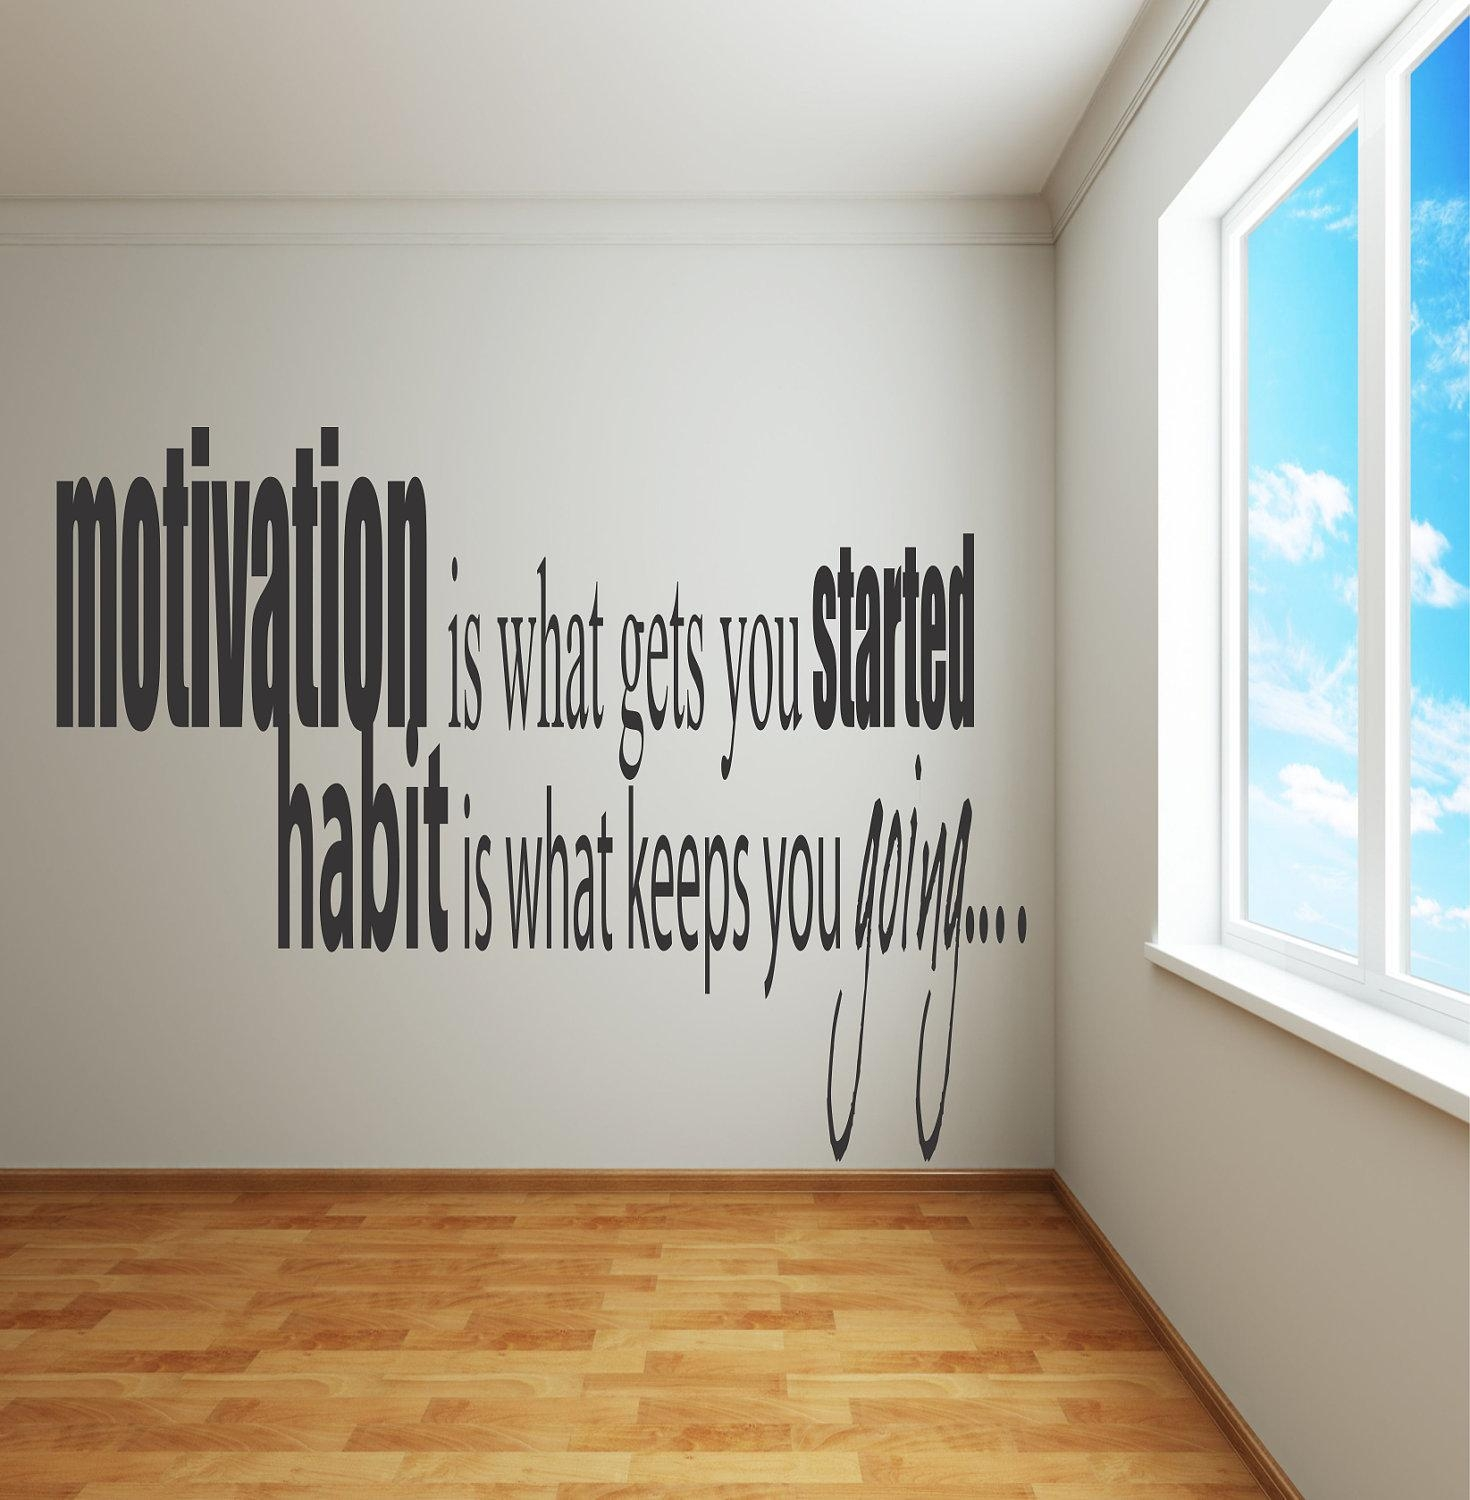 Adhesive Wall Decals Motivation Is What Gets You Pertaining To Inspirational Wall Decals For Office (Image 1 of 20)